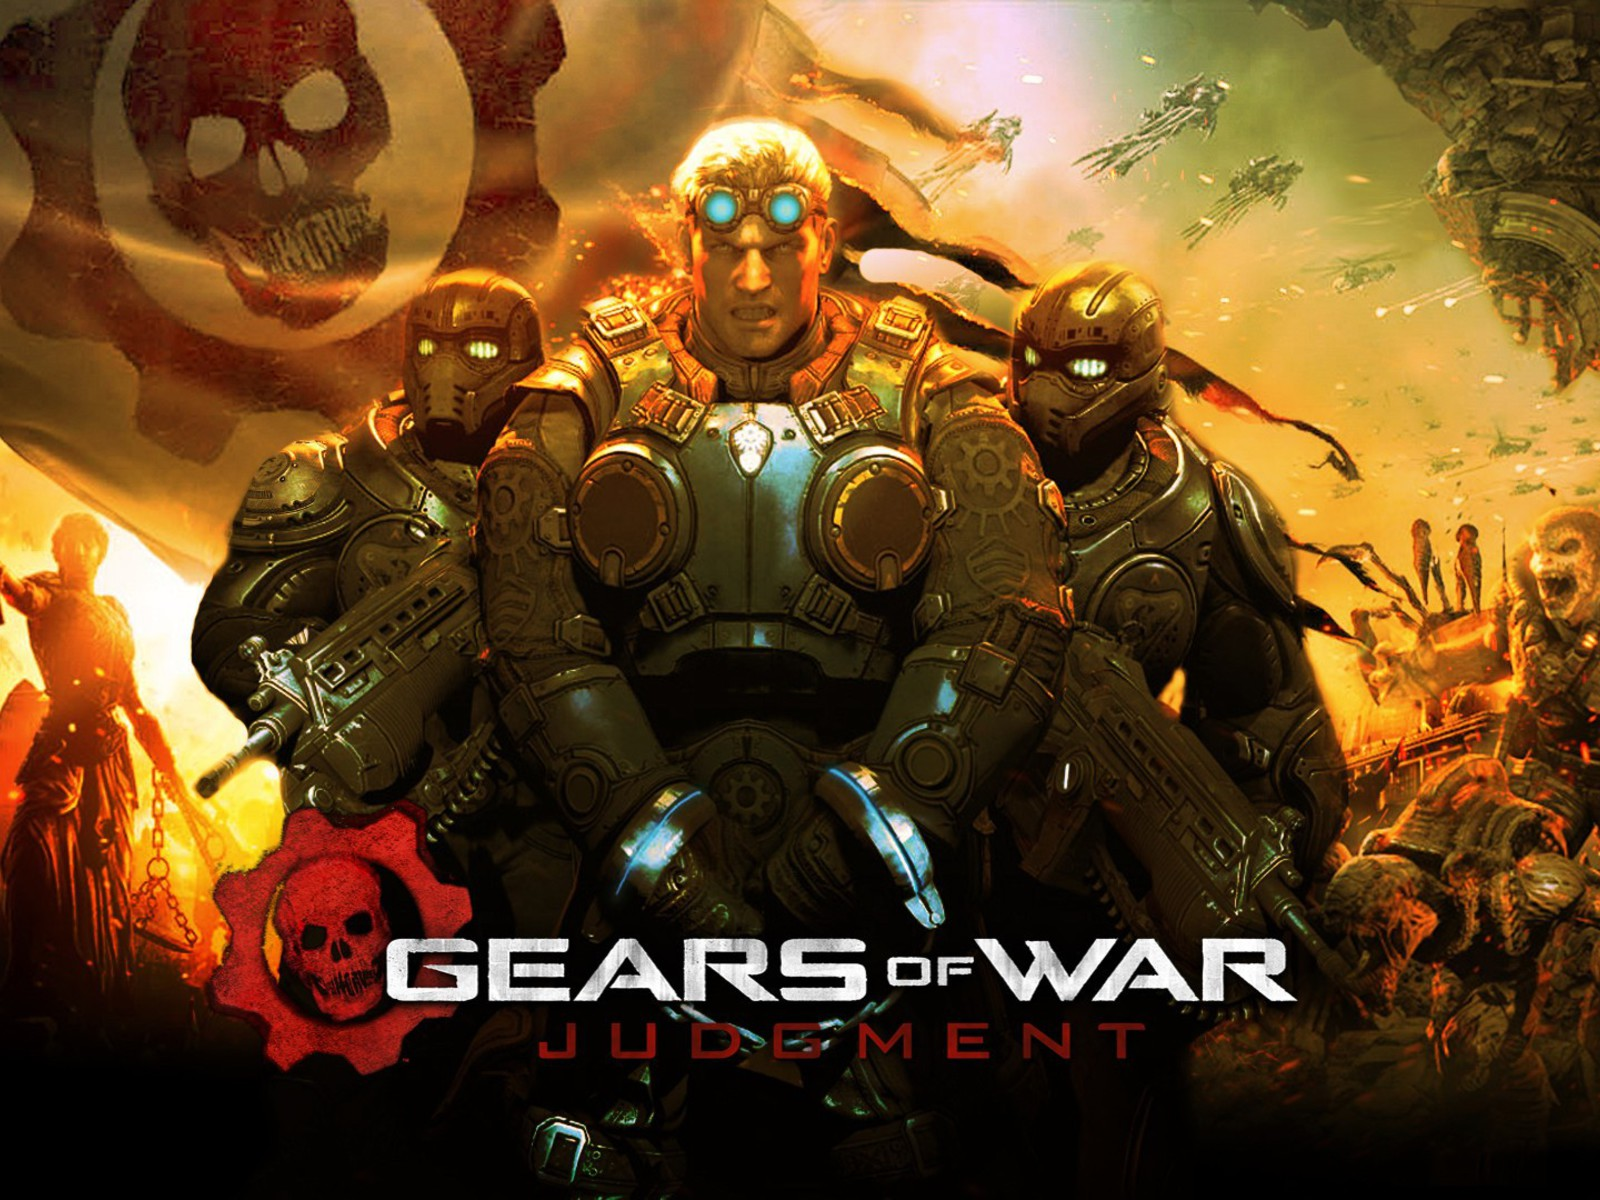 Gears Of War 3 Hd Wallpapers For Android: Video Games Gears Of War Wallpaper